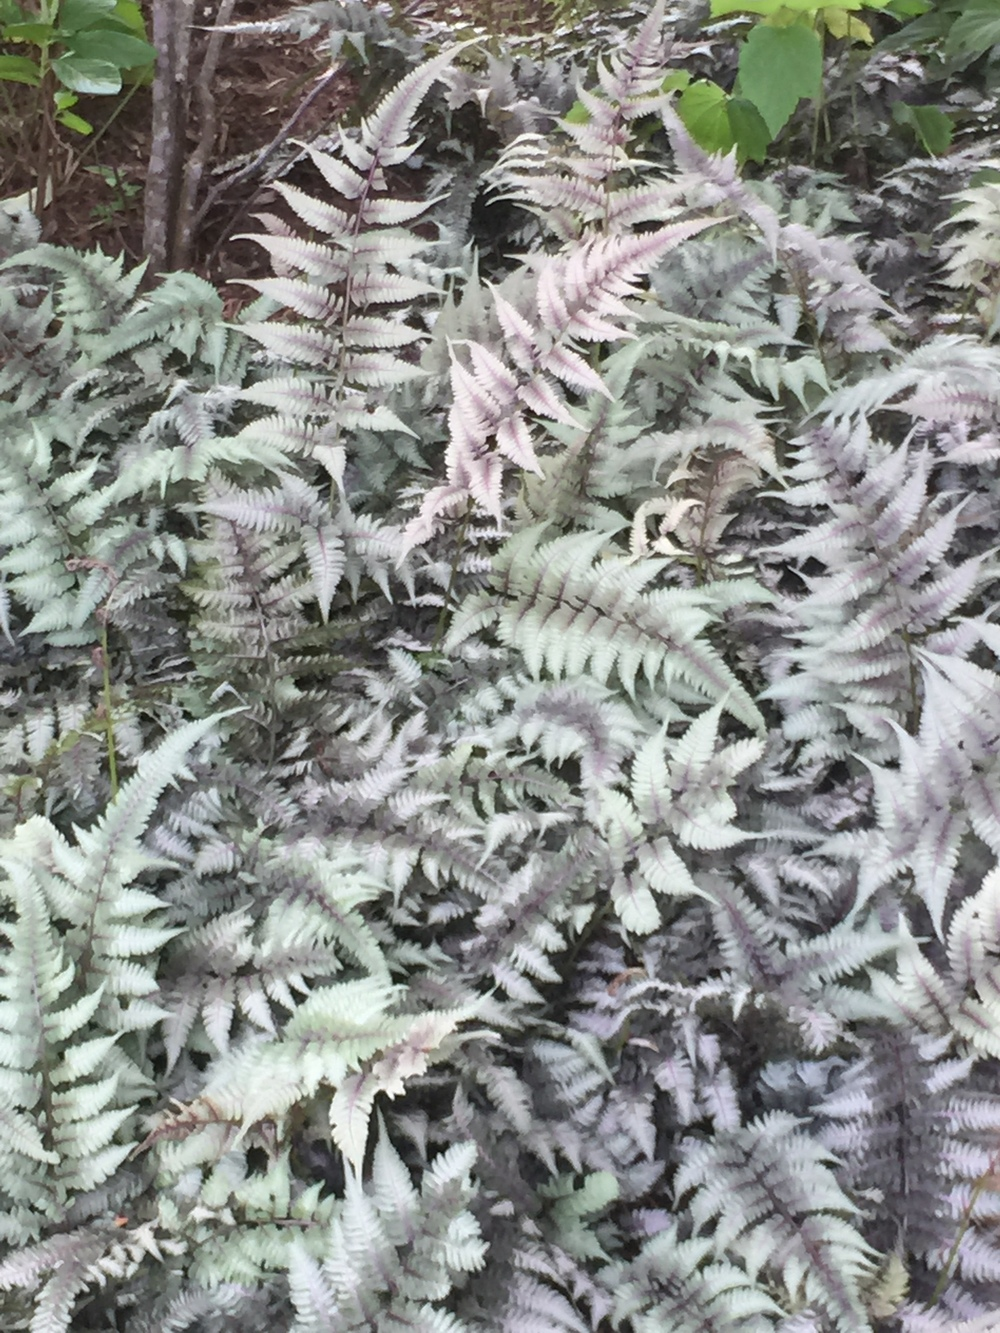 The foliage of the Japanese painted fern has a pinkish vein that gives color all season.